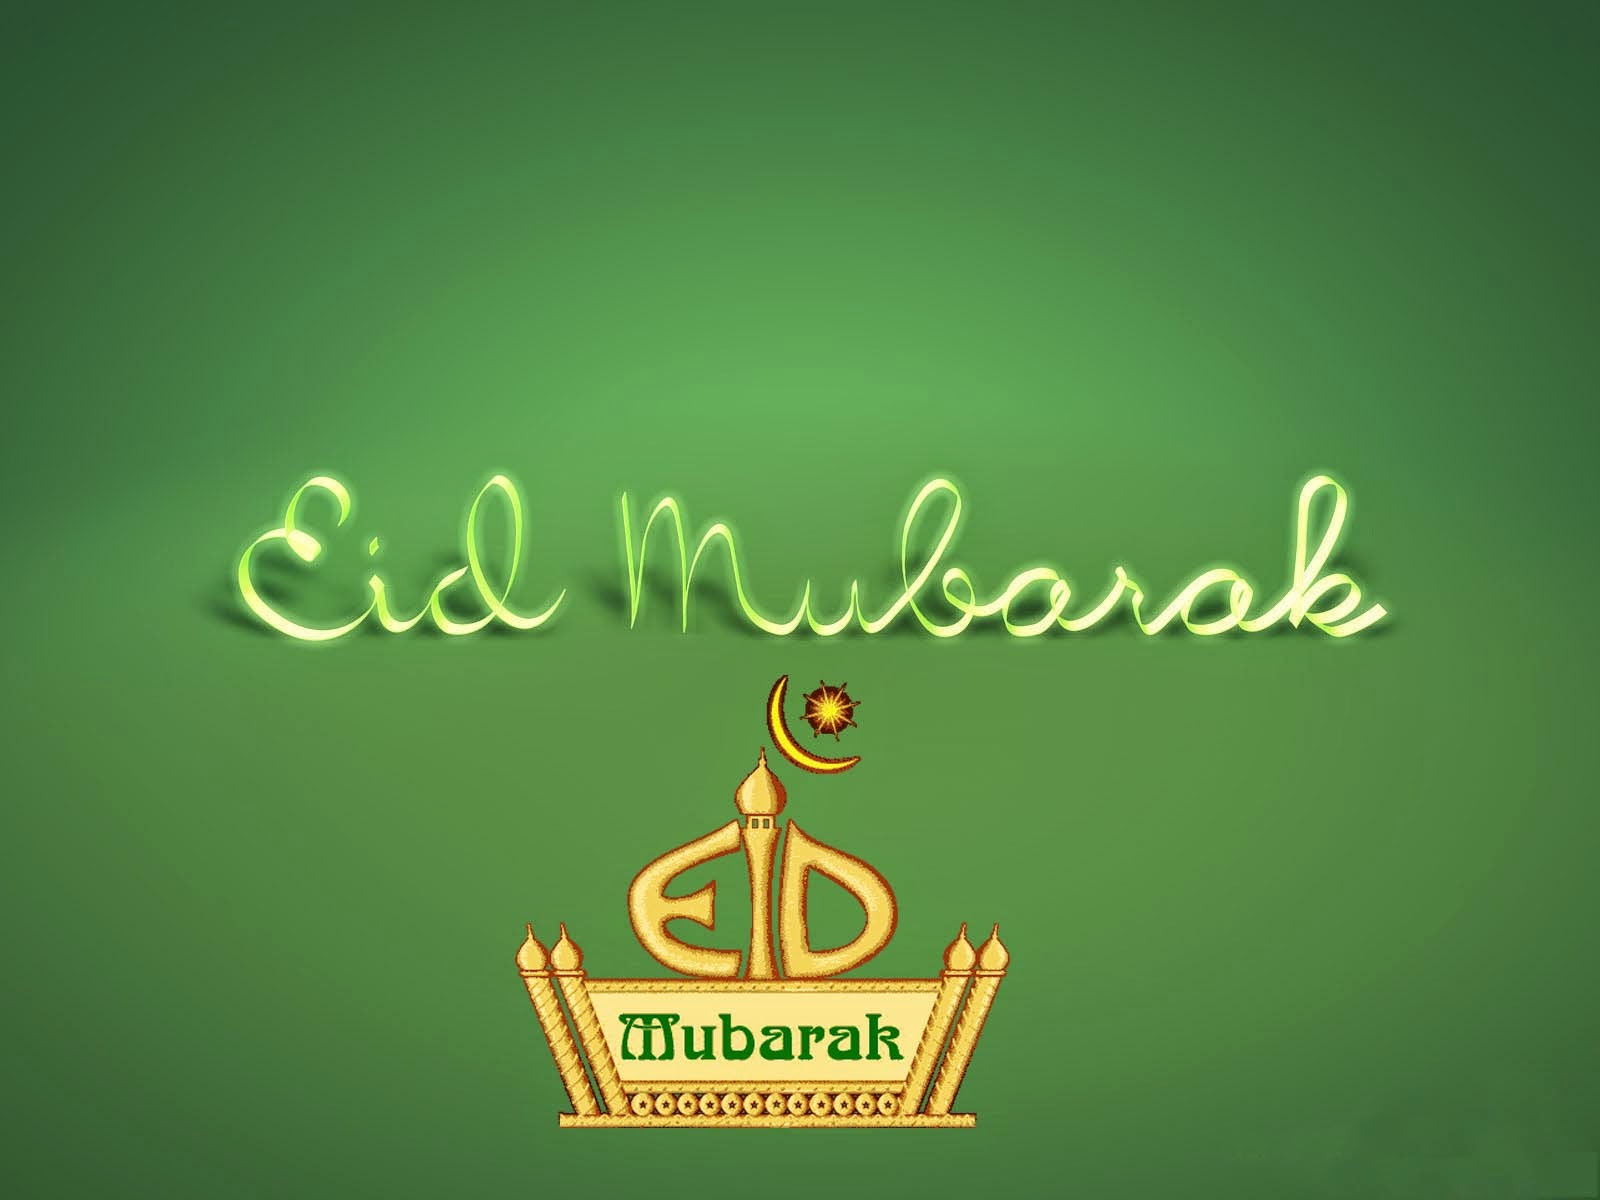 Happy EID Mubarak wallpapers , Pictures, Images 2014